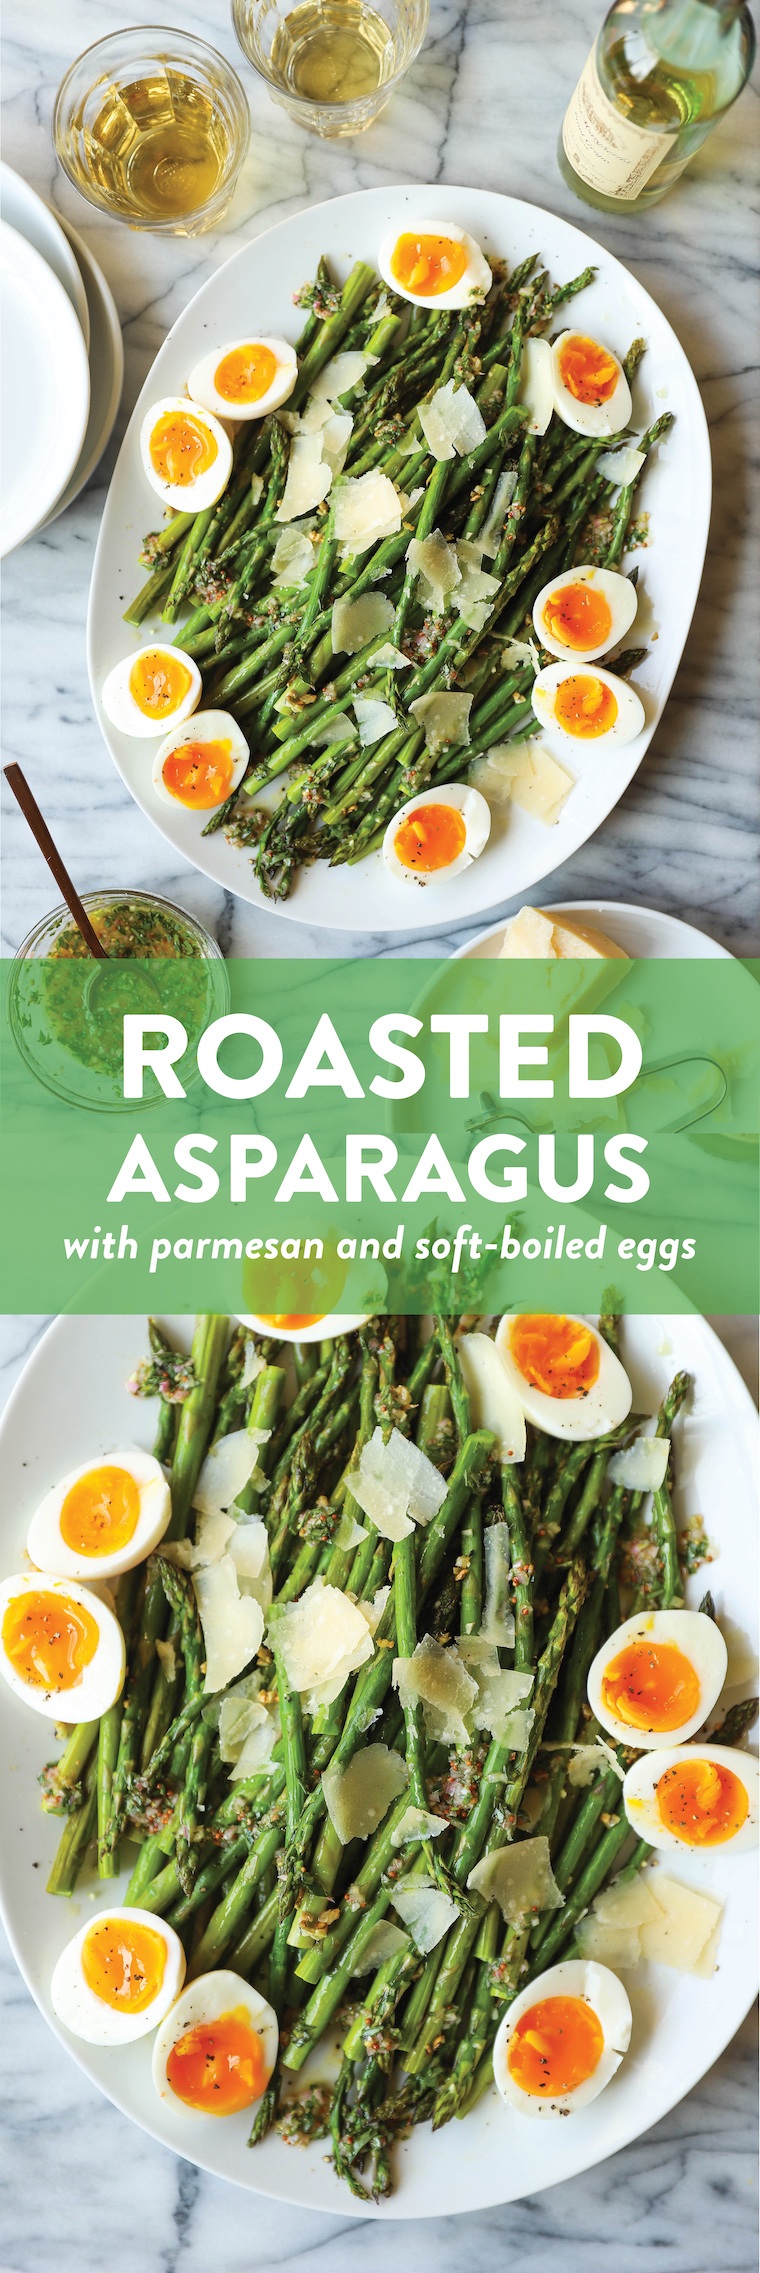 Roasted Asparagus with Parmesan + Soft-Boiled Eggs - This is truly the only way to prepare asparagus! Roasted perfectly until crisp-tender and served with a refreshing tarragon vinaigrette, soft-boiled eggs and freshly shaved Parmesan.